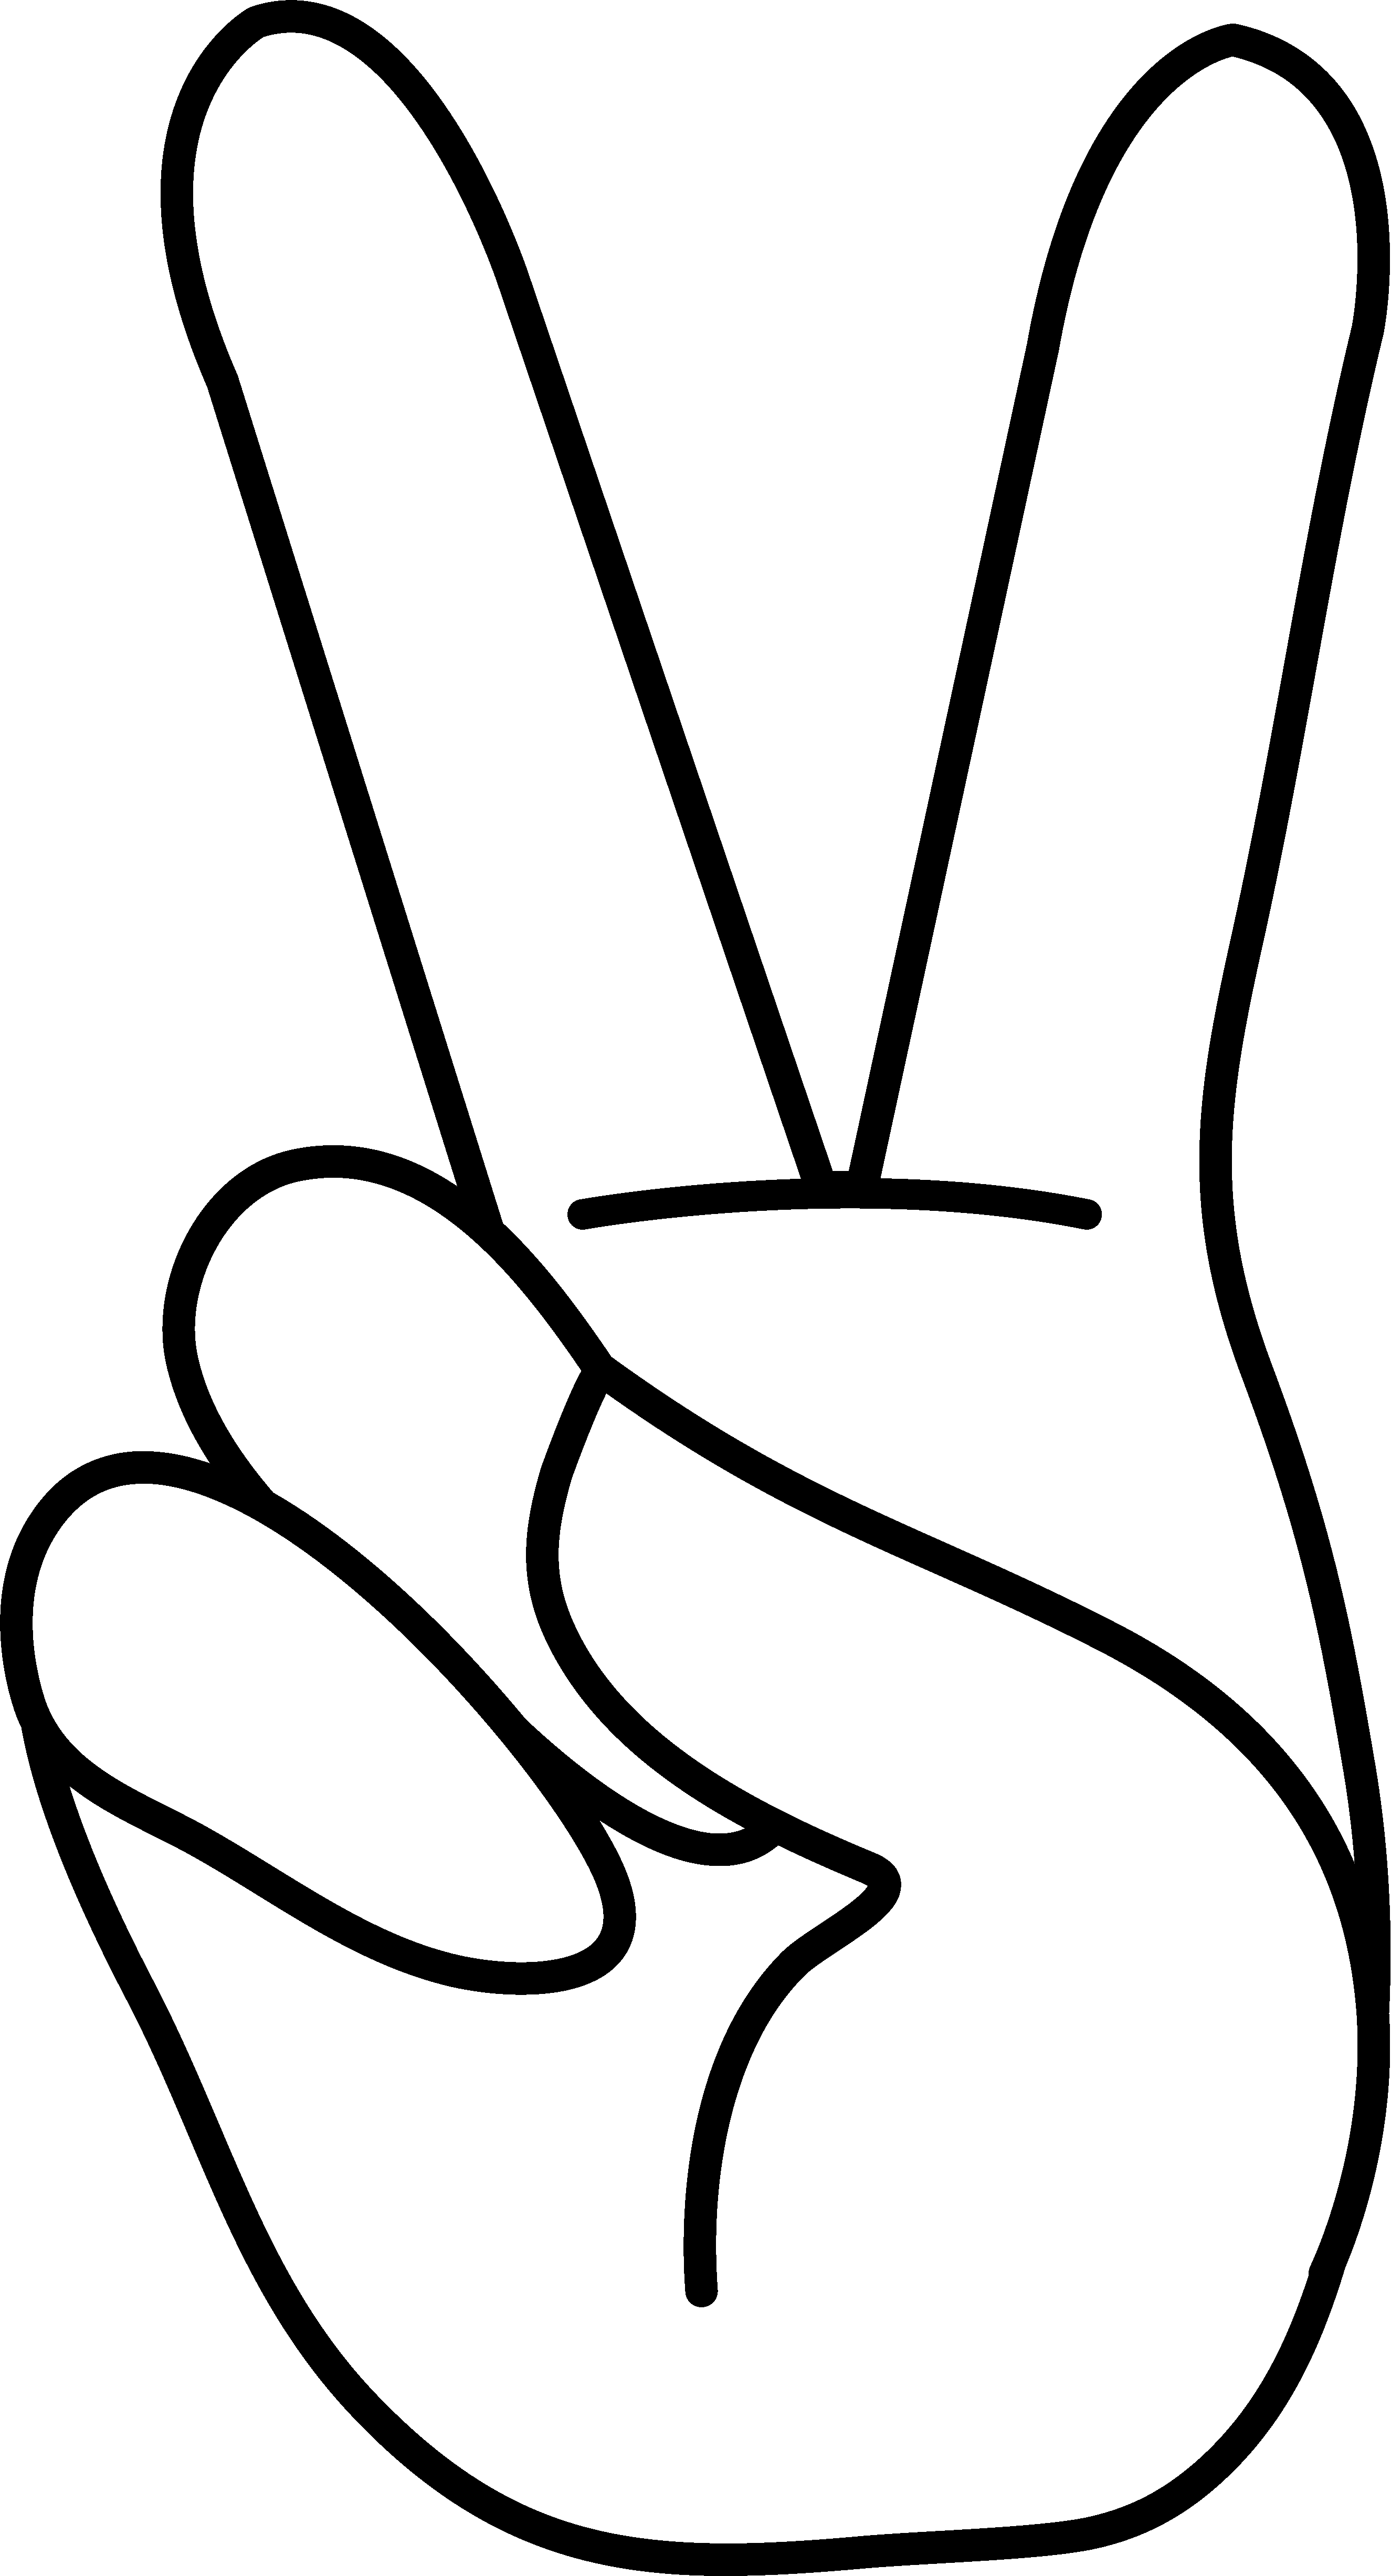 Sweetclipart Com Multisite Sweetclipart Files Peace Hand Sign Blank Png Peace Sign Art Peace Sign Drawing Peace Sign Hand